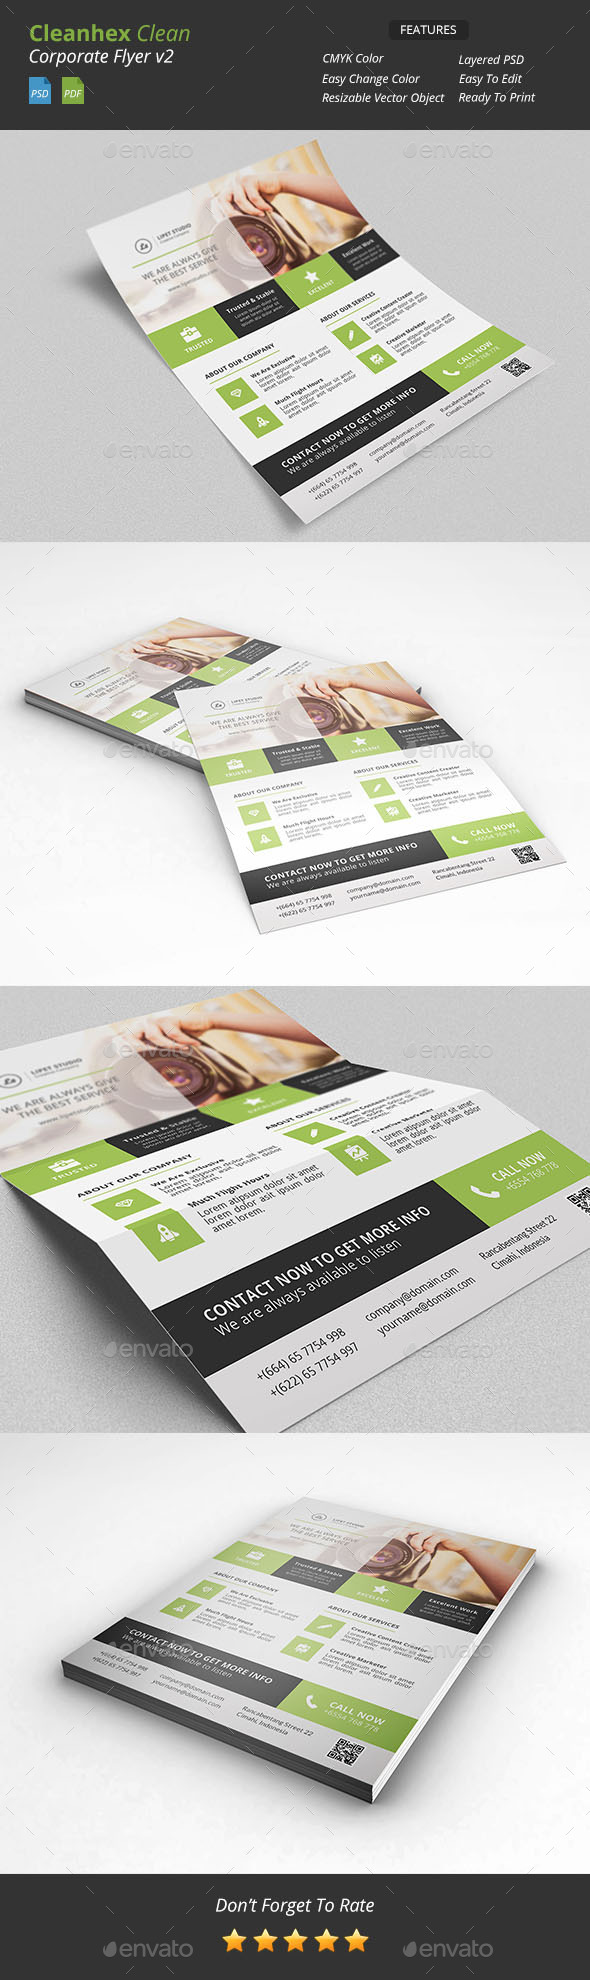 Cleanhex - Clean Corporate Flyer v2 - Corporate Flyers